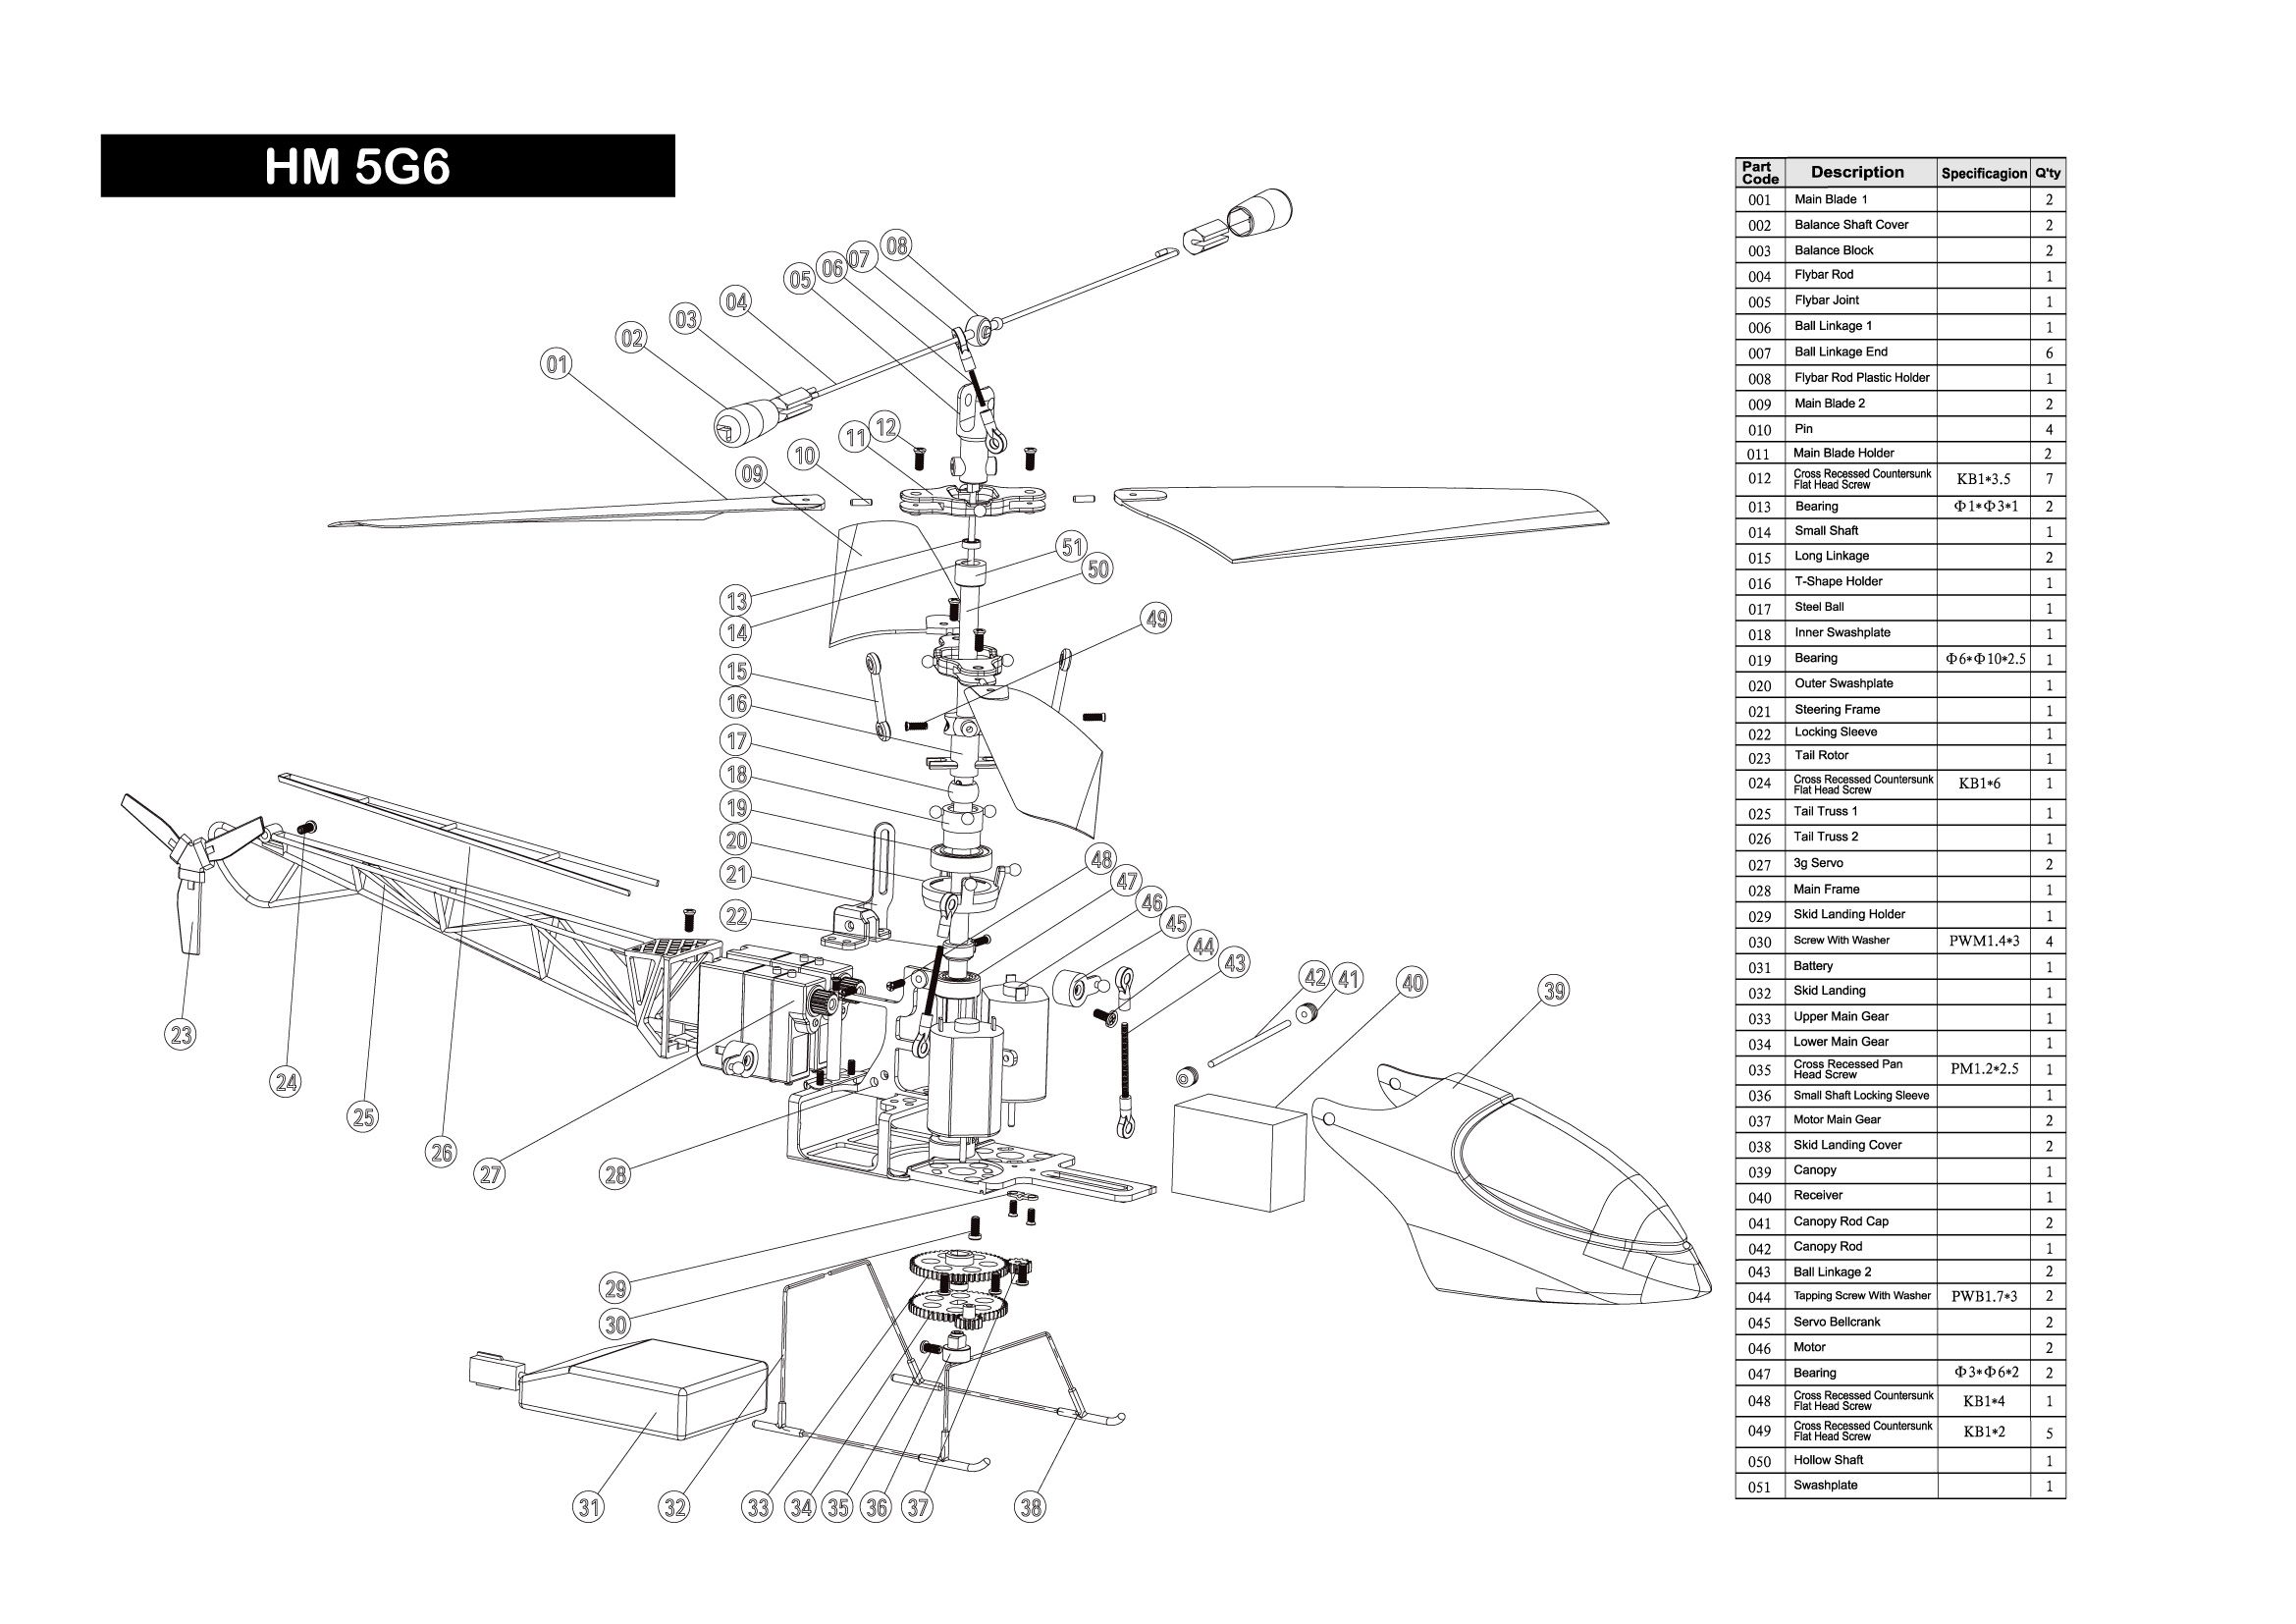 hight resolution of walkera hm 5g6 exploded diagram parts list quadcopters rc rc helicopter anatomy rc helicopter diagram